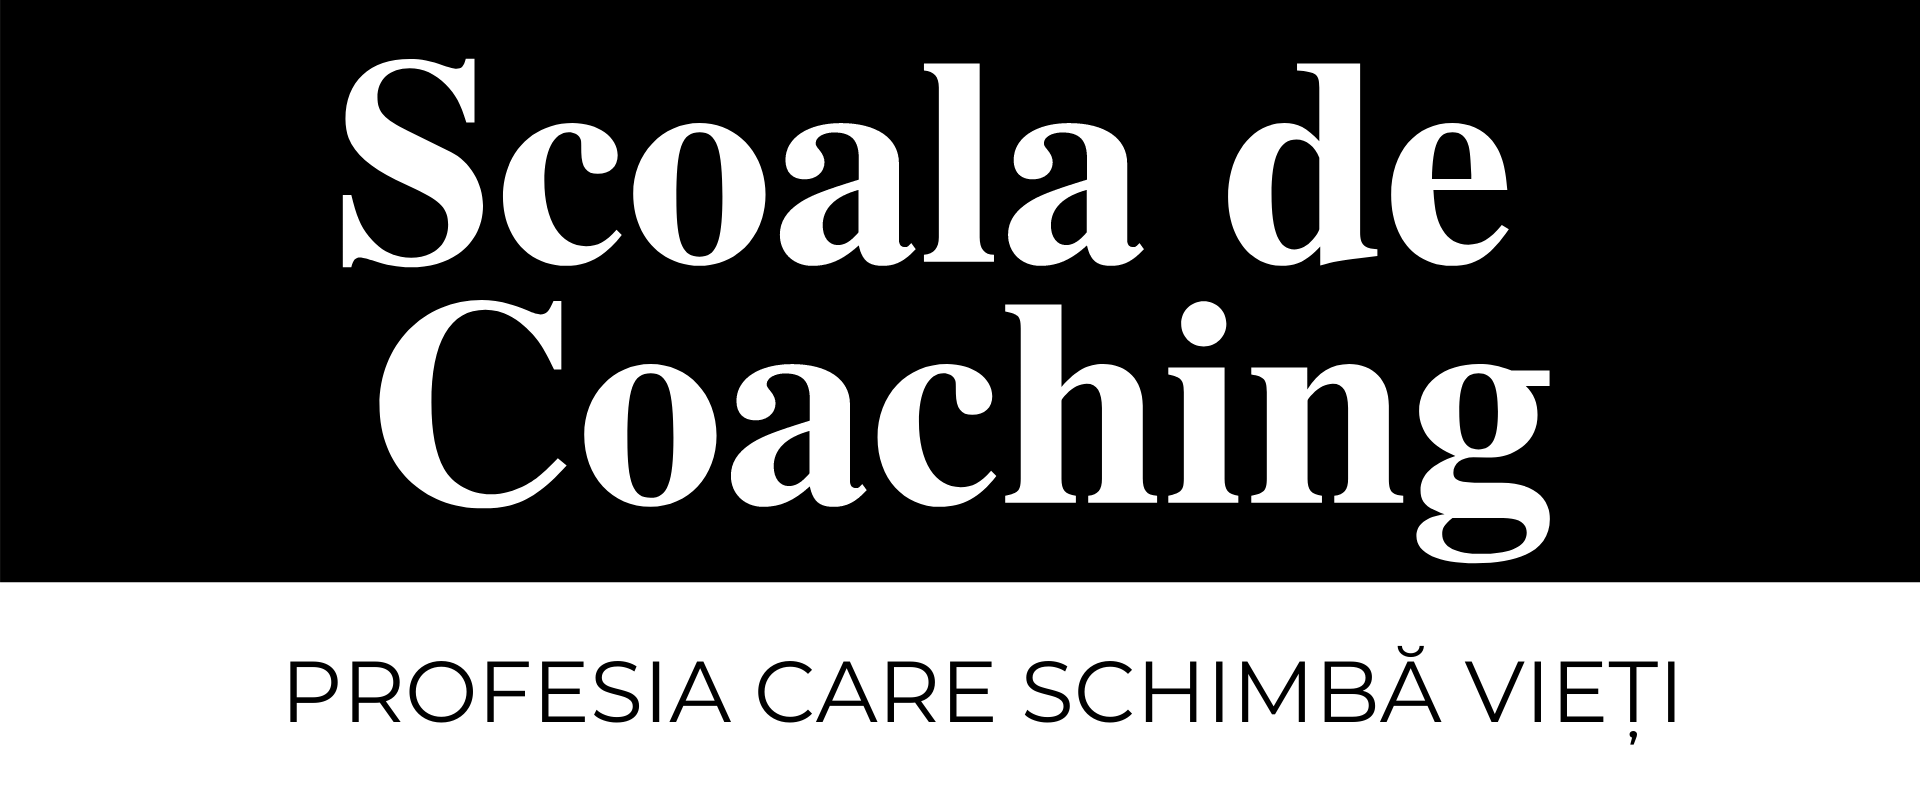 Scoala de coaching